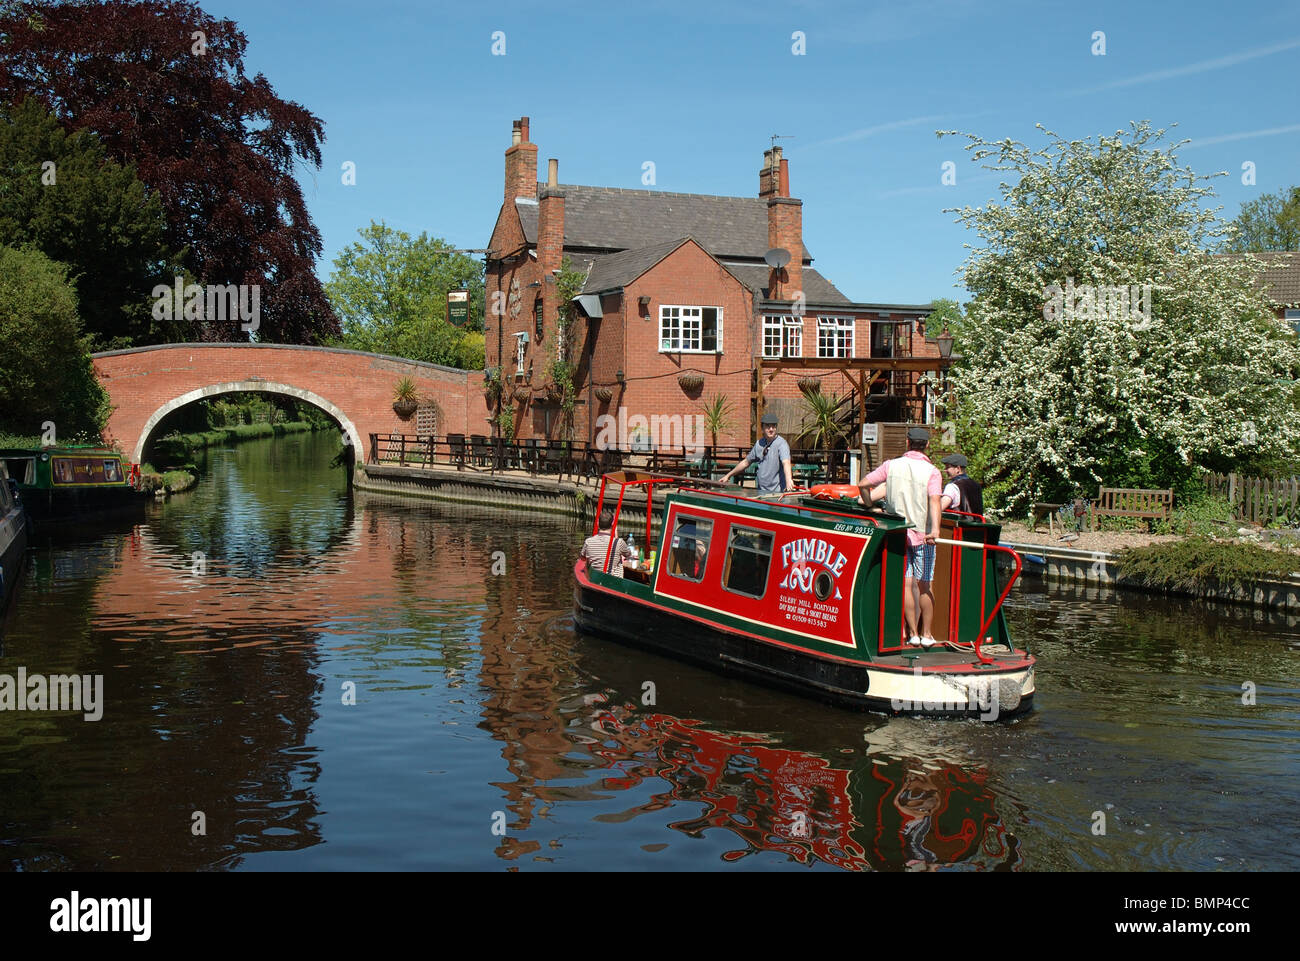 the River Soar, Barrow upon Soar, Leicestershire, England, UK - Stock Image